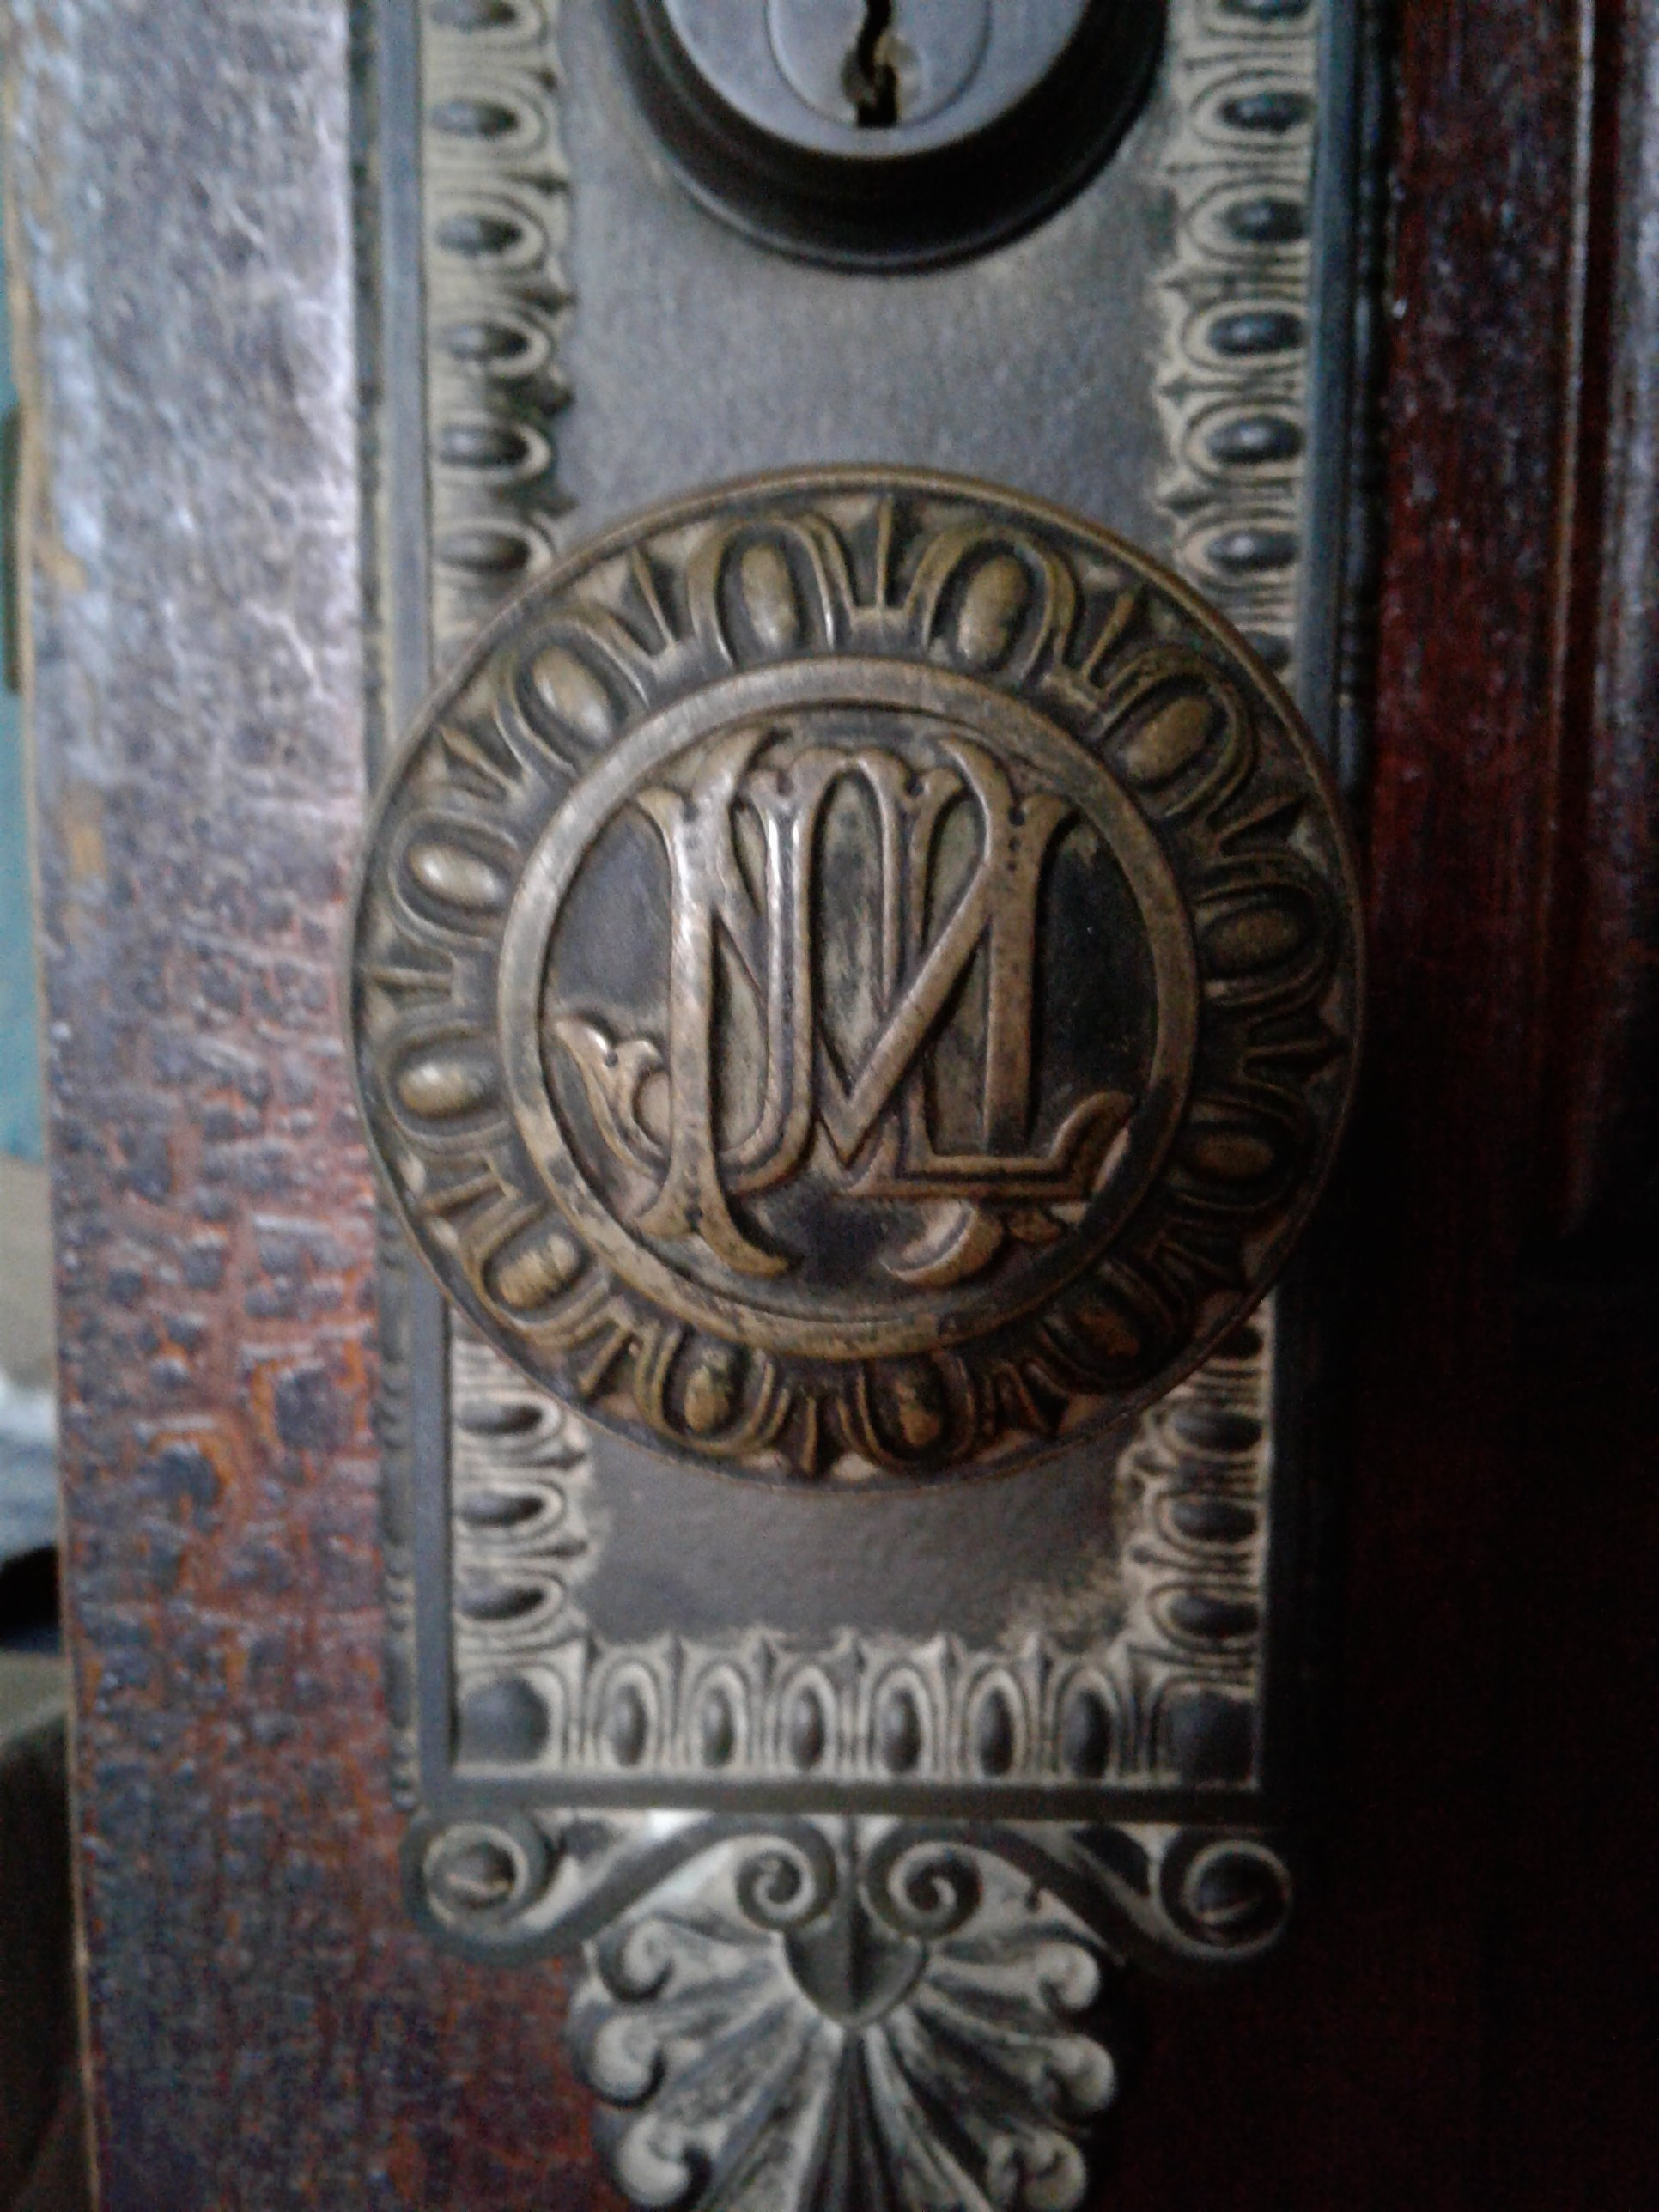 Doorknob in Historic Jones Memorial Library. Initials J.M.L. engraved in each doorknob, egg and dart molding pattern around perimeter of knob and knob plate, anthemion molding pattern along top and bottom of knob plate.